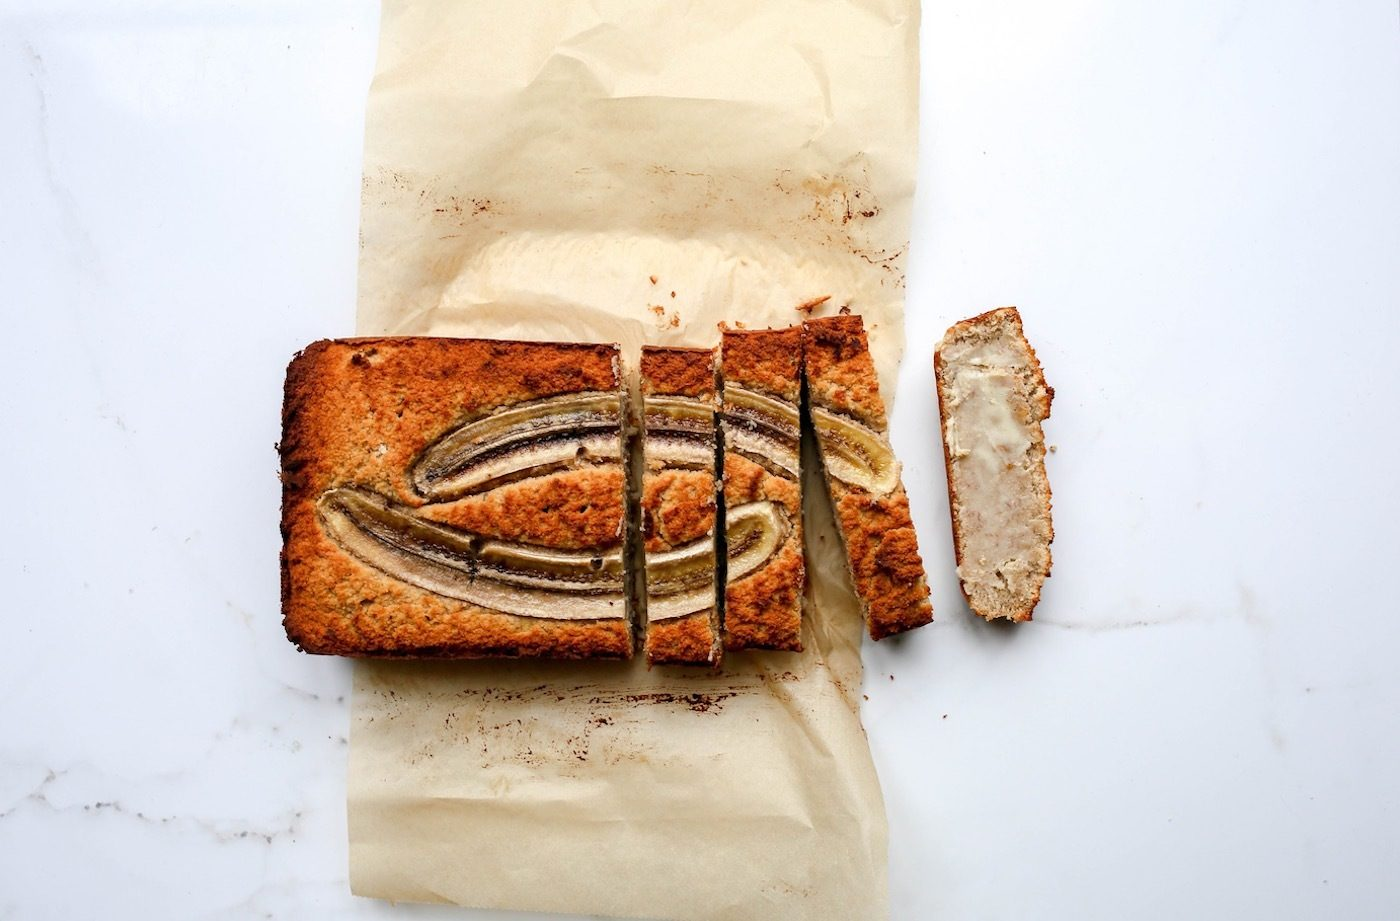 This healthy banana bread won't mess with your blood sugar thanks to two smart tweaks